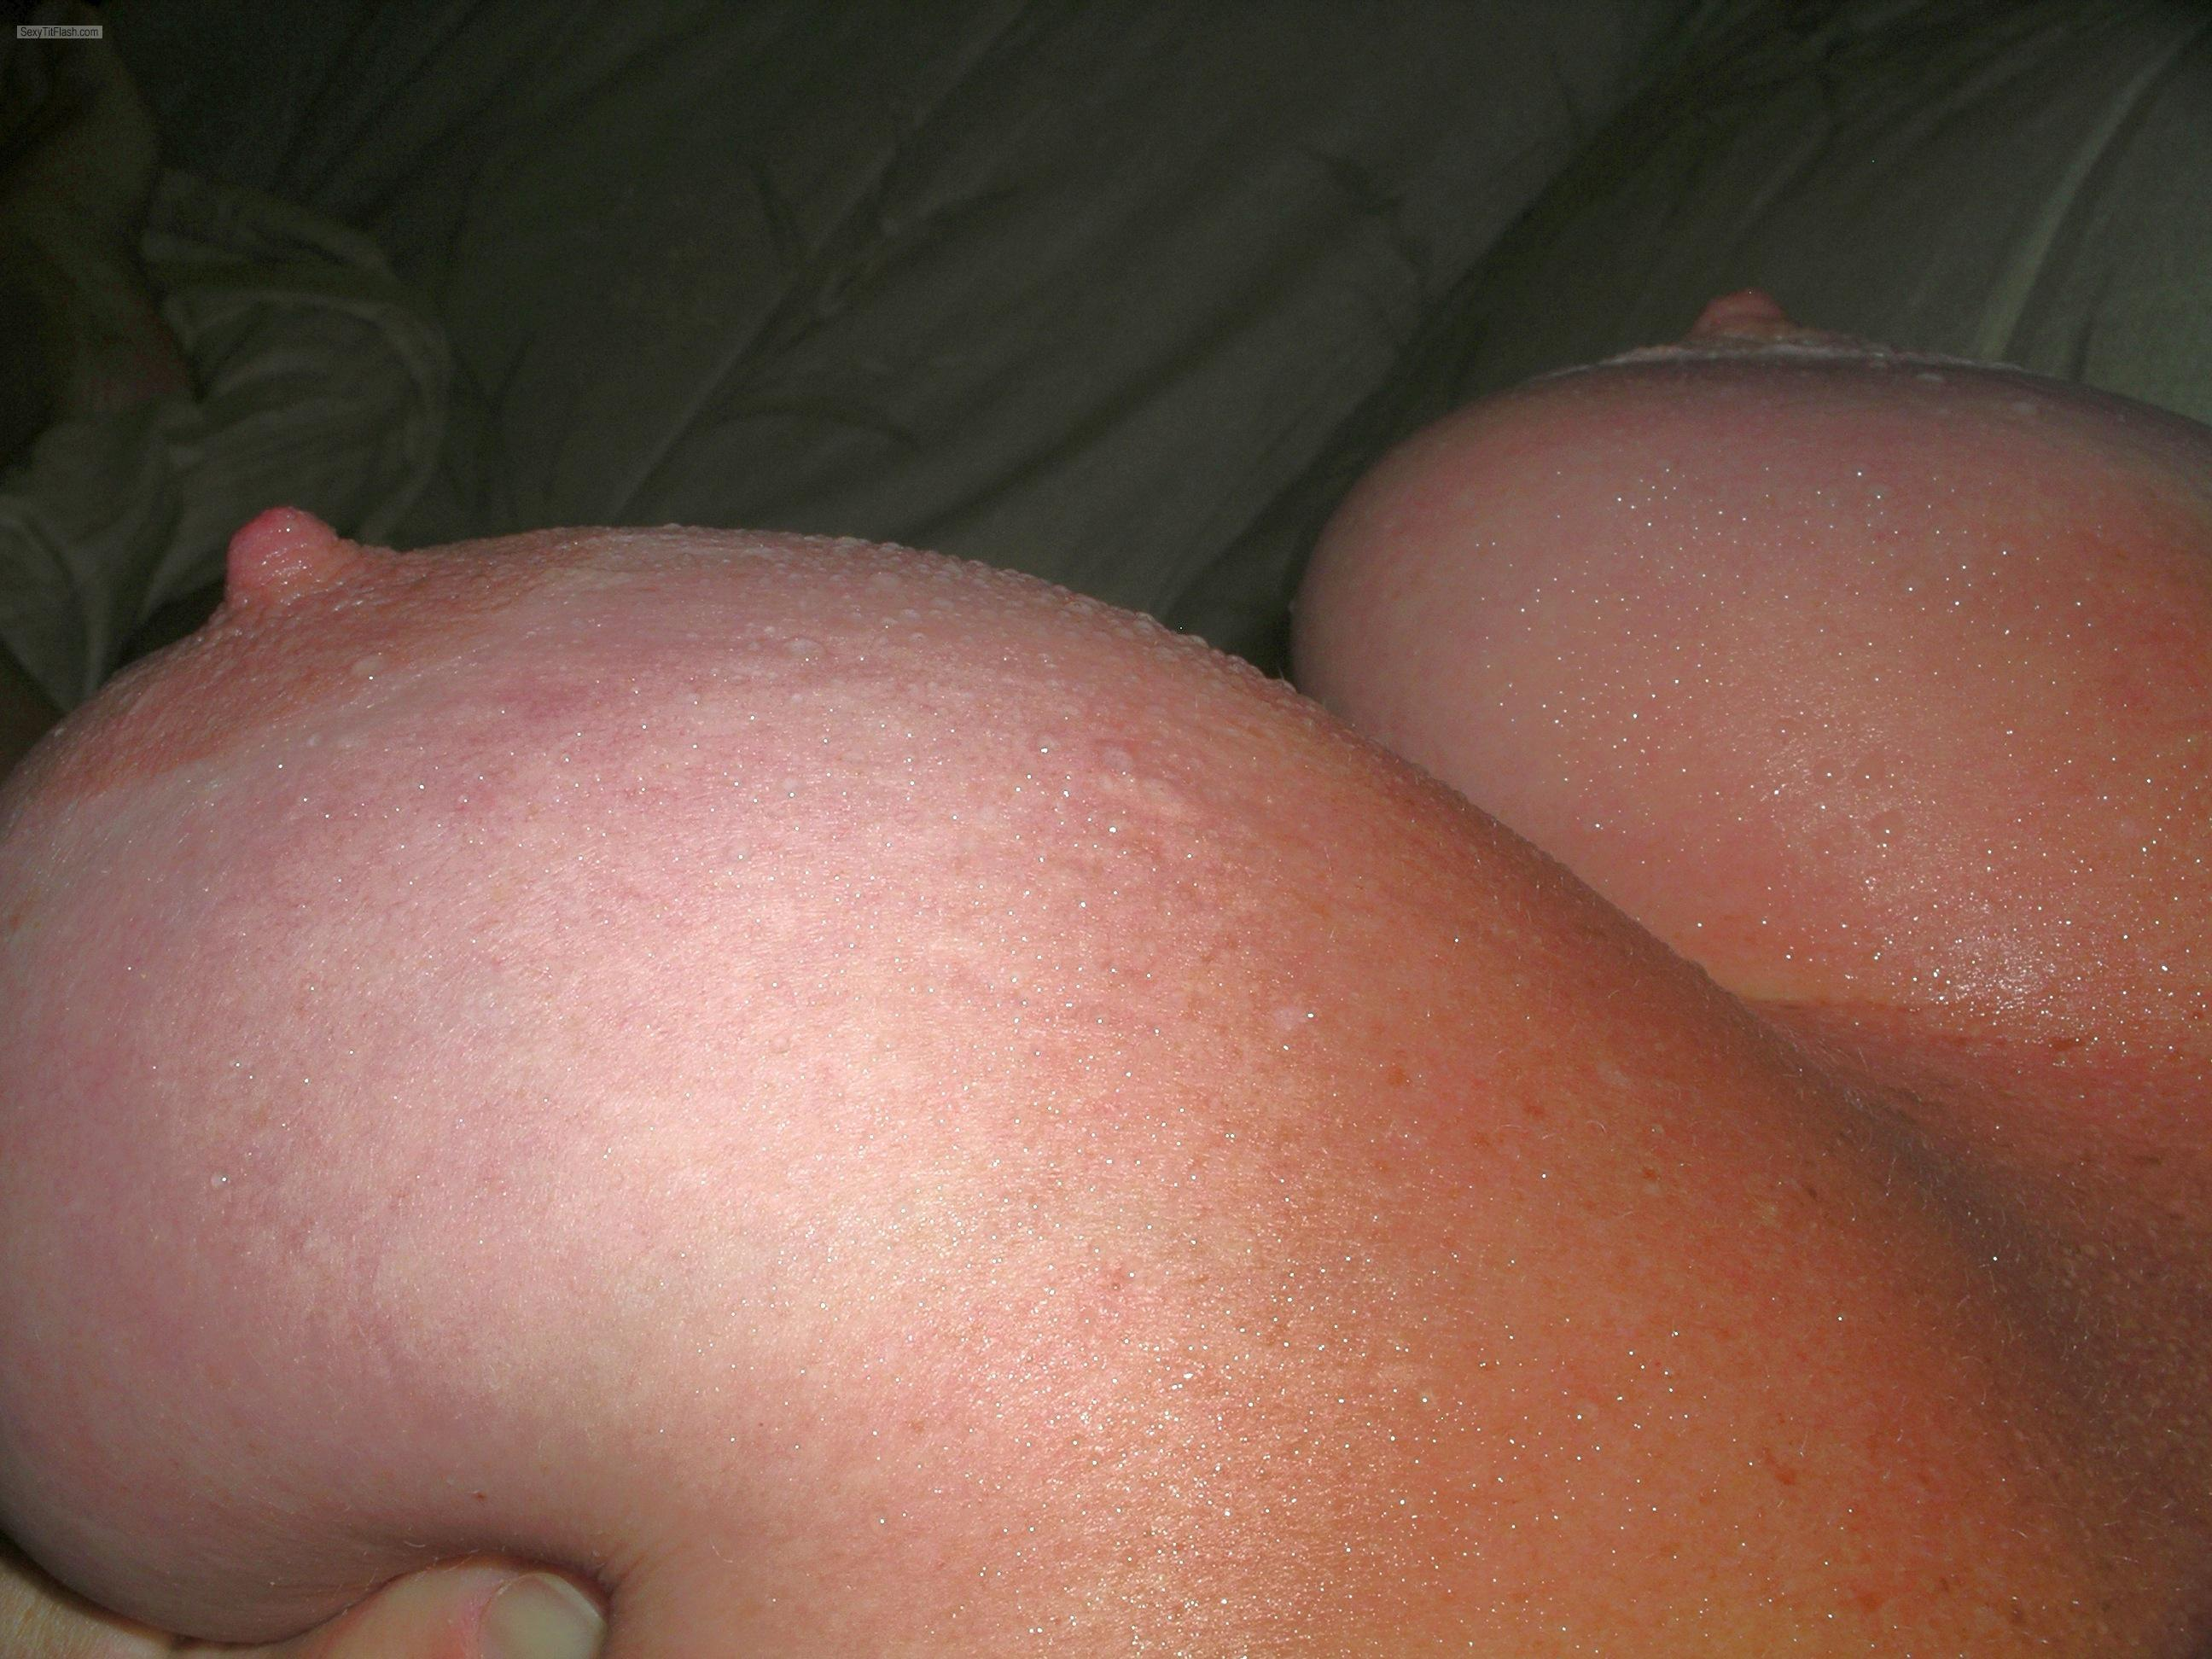 Tit Flash: Wife's Tanlined Big Tits - Big T from United States